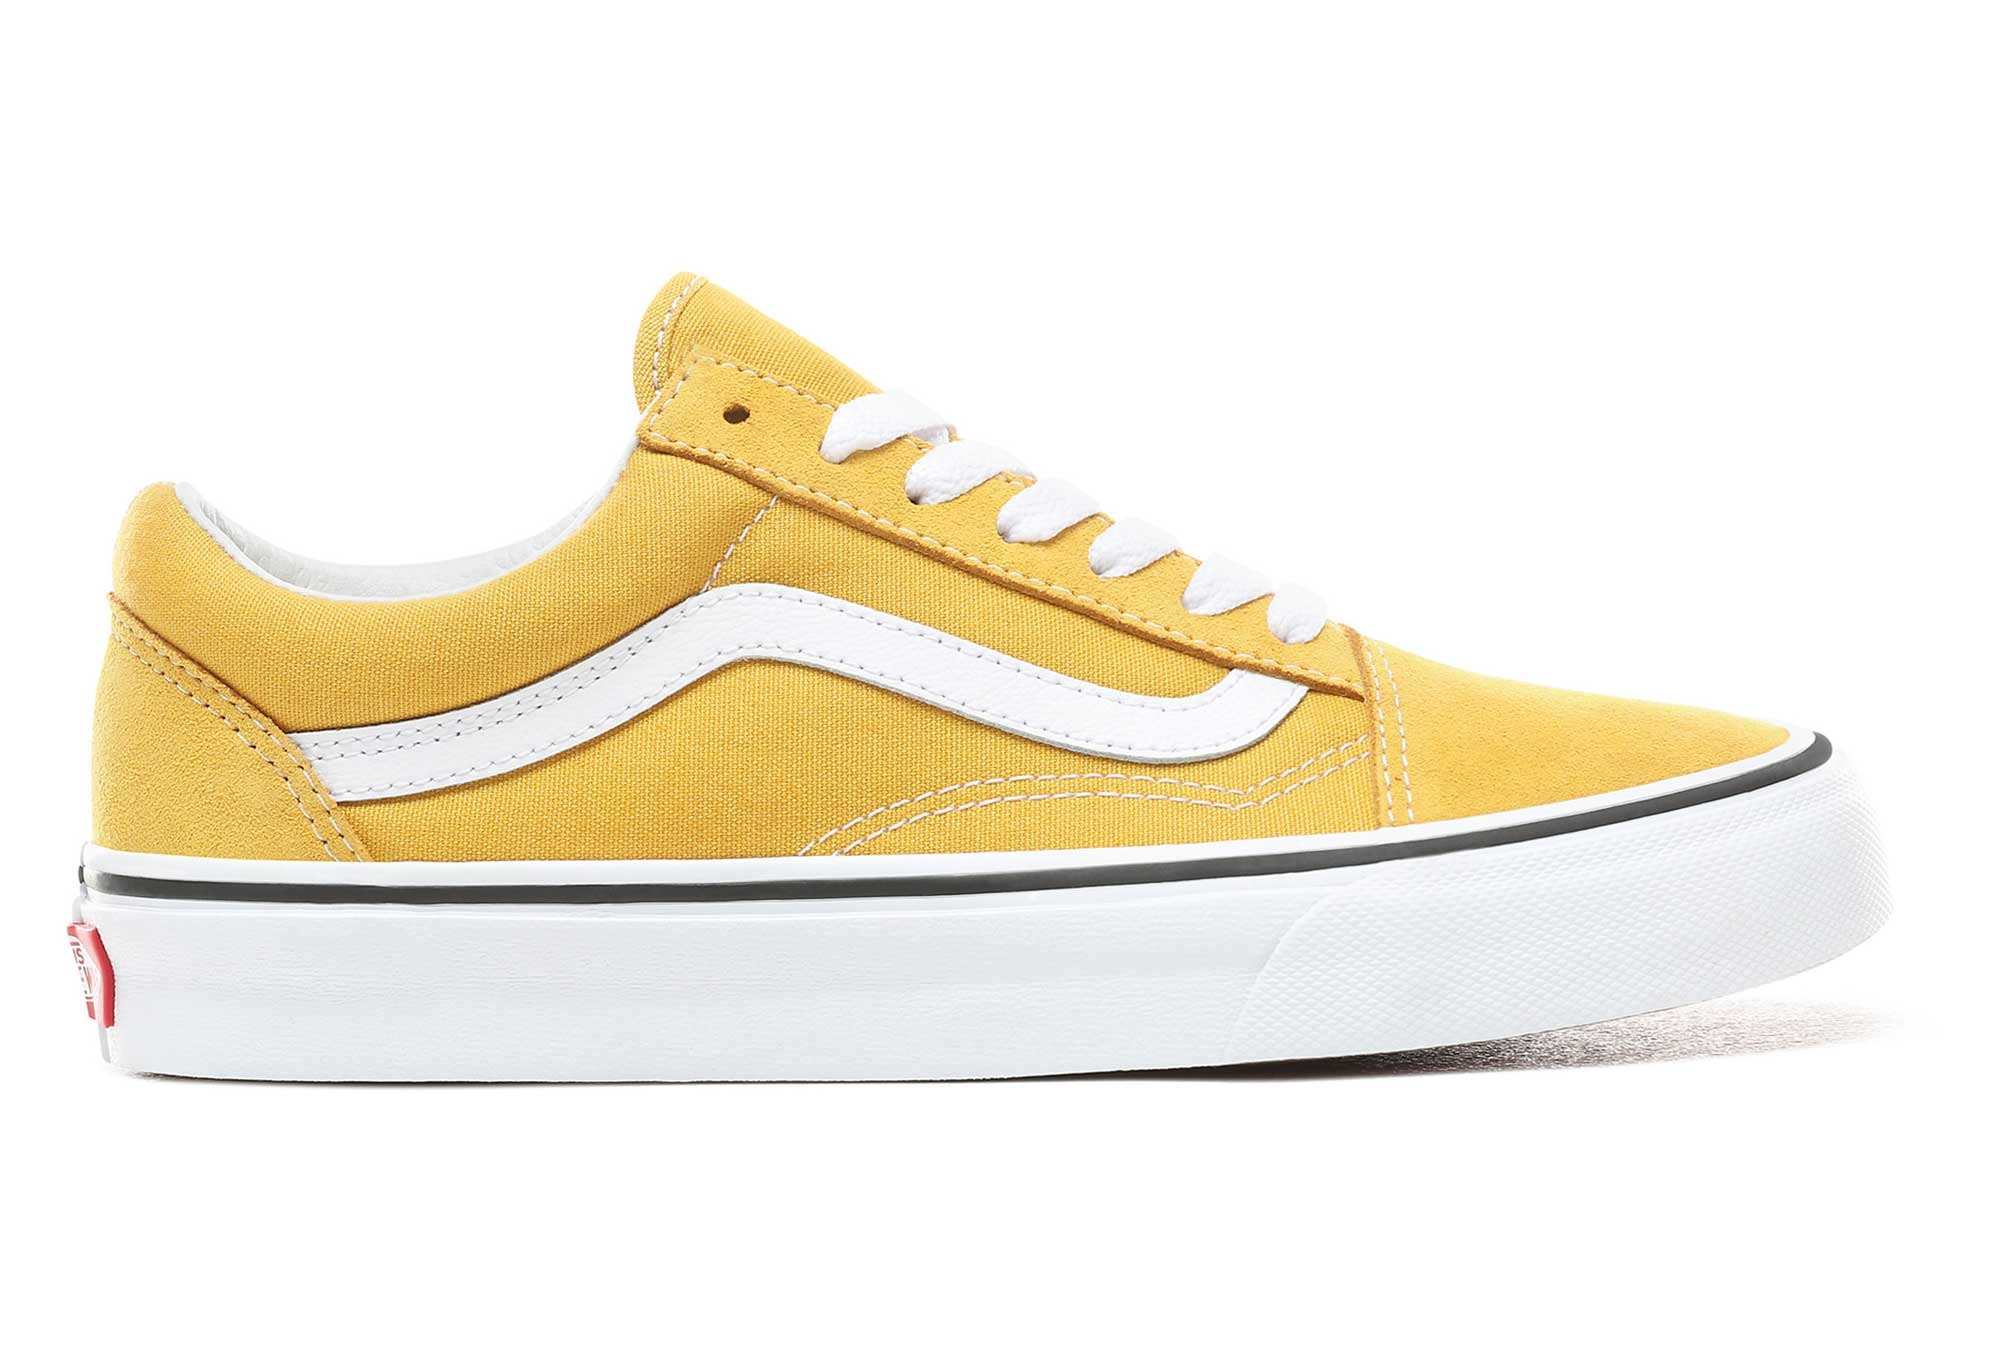 vans Old Skool giallo